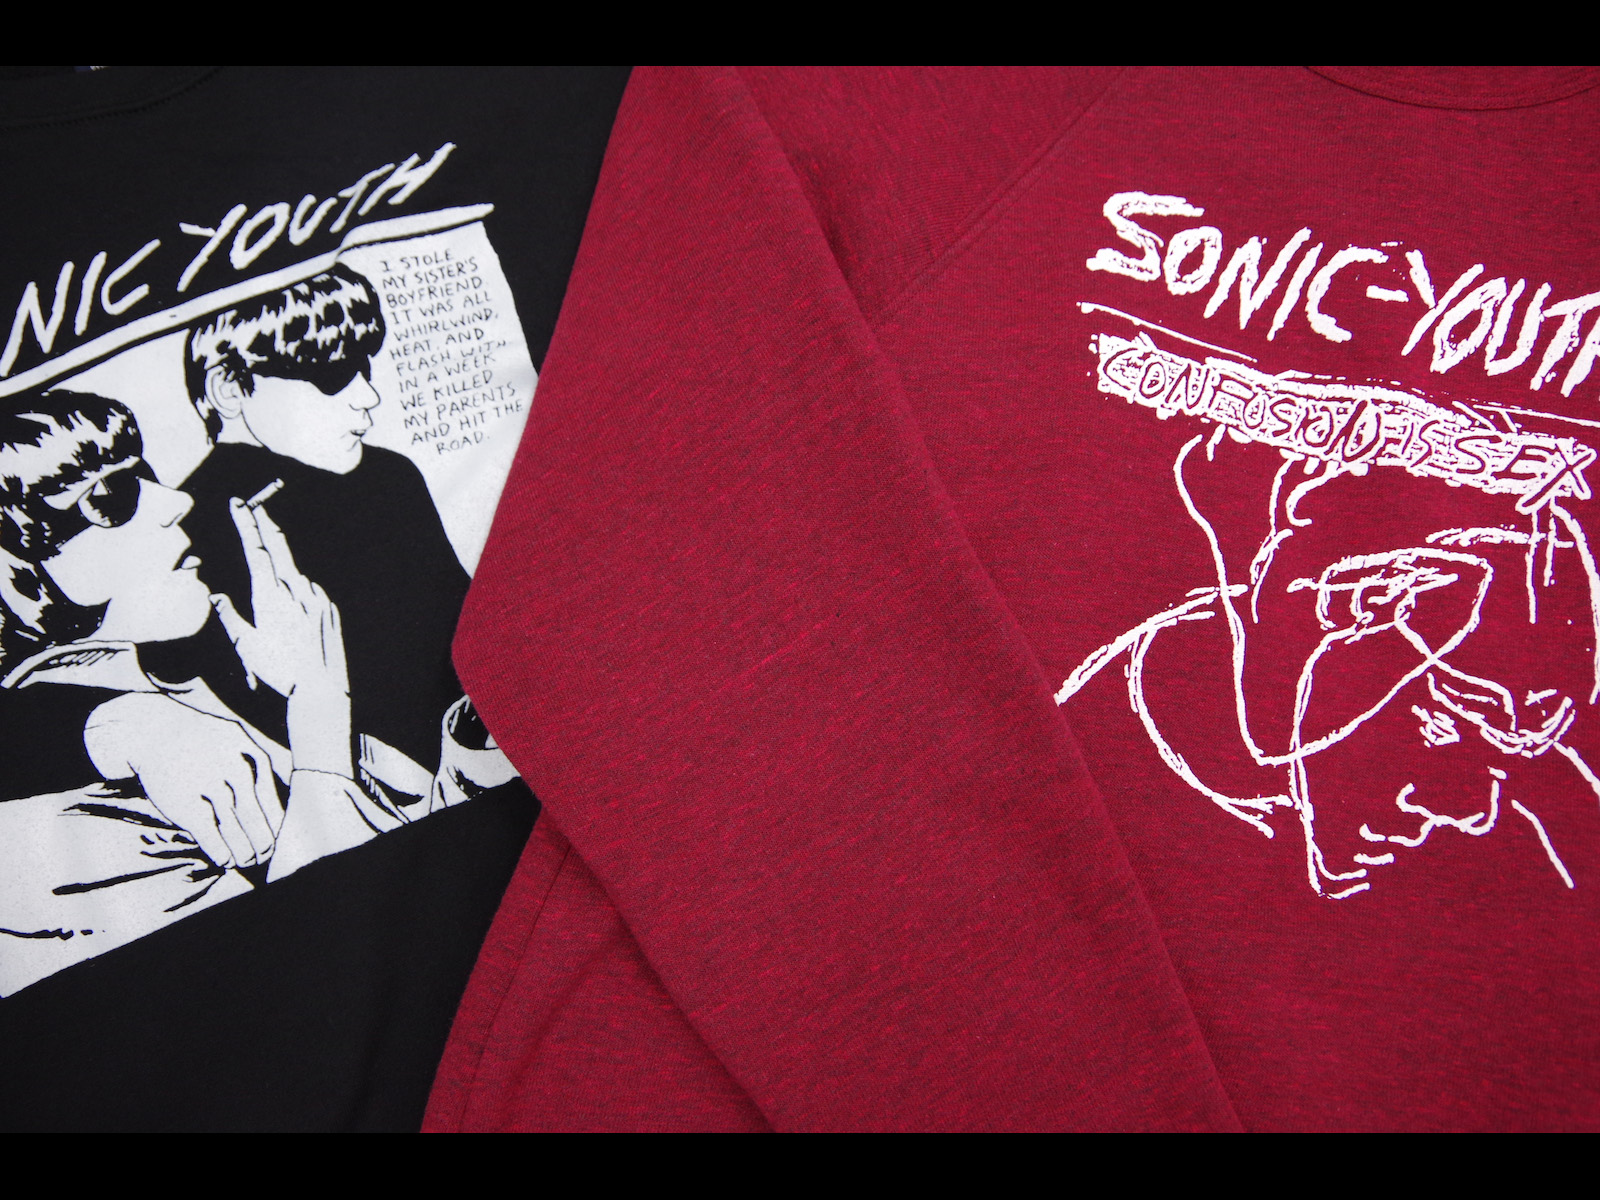 SONIC YOUTH – Official Sweater